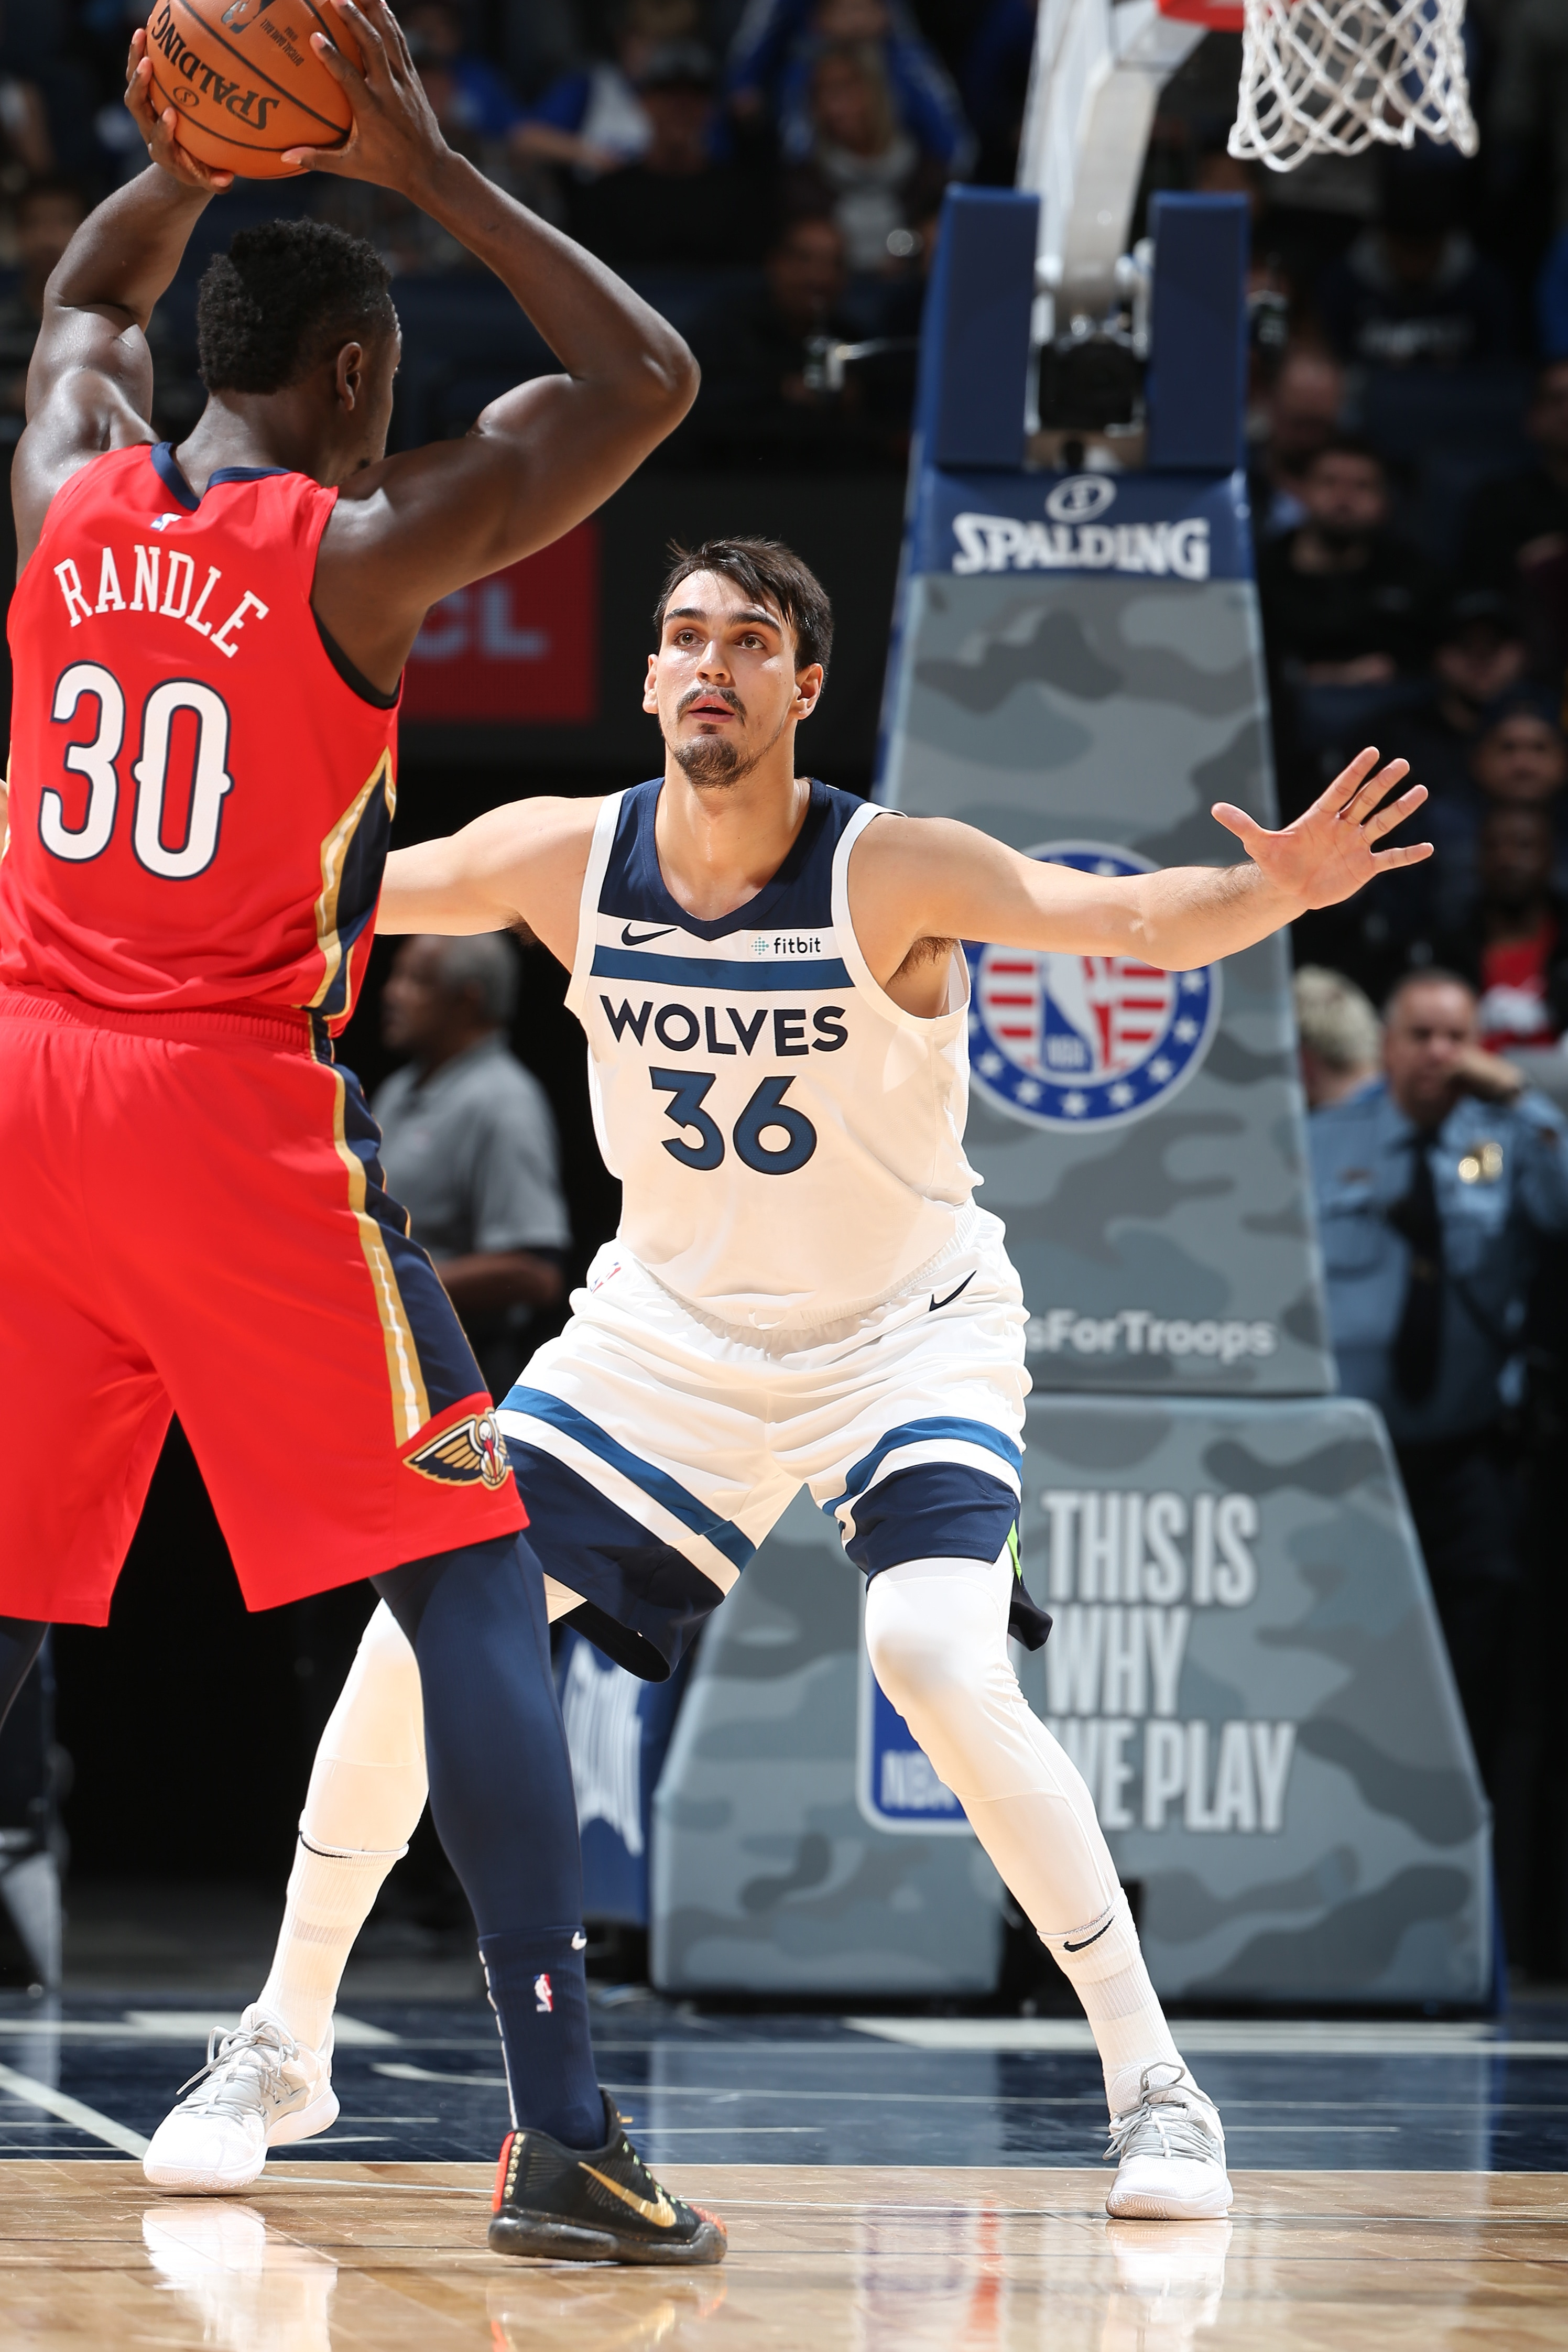 DARIO SARIC HAS THE SKILLS TO OPEN UP THE TIMBERWOLVES OFFENSE